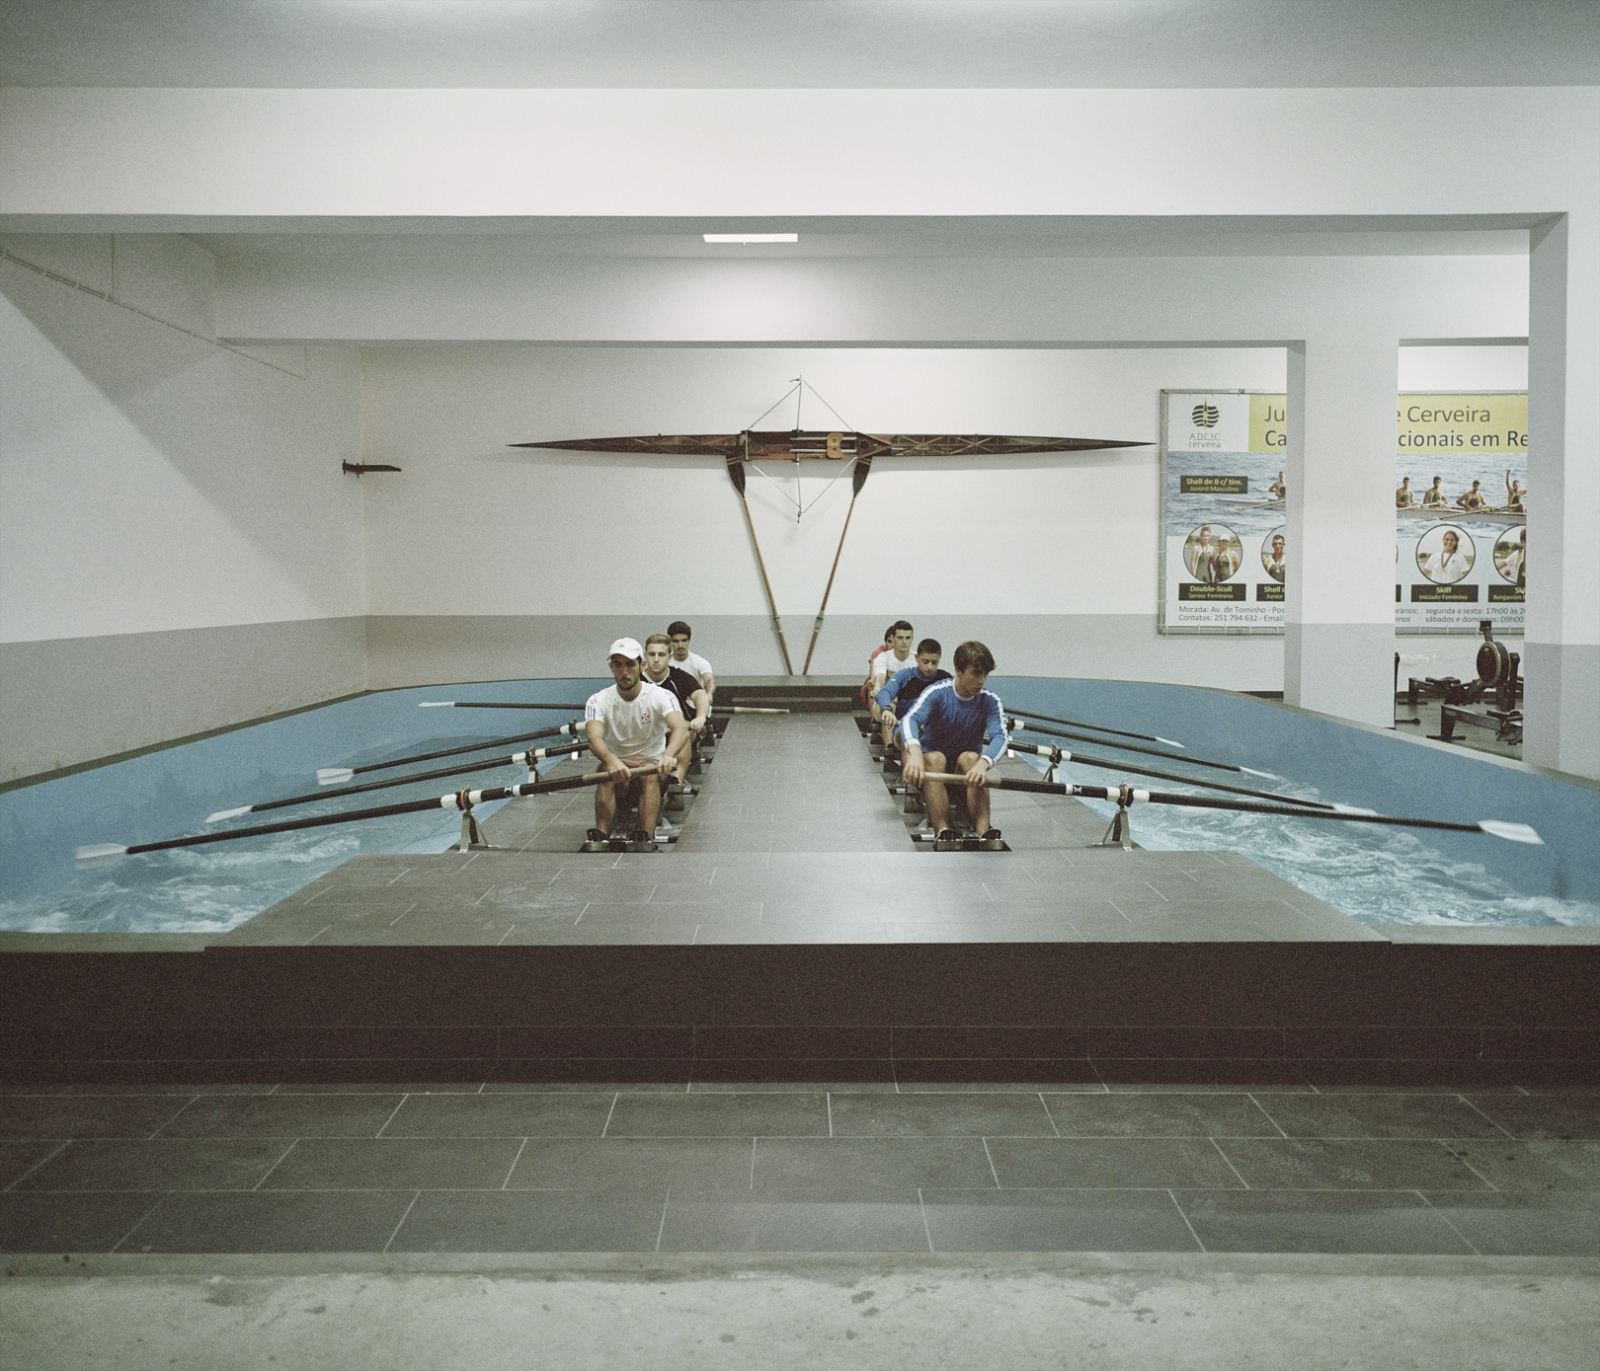 Portugal, Vila Nova de Cerveira. A boat team train in a artificial pool that simulate the river.